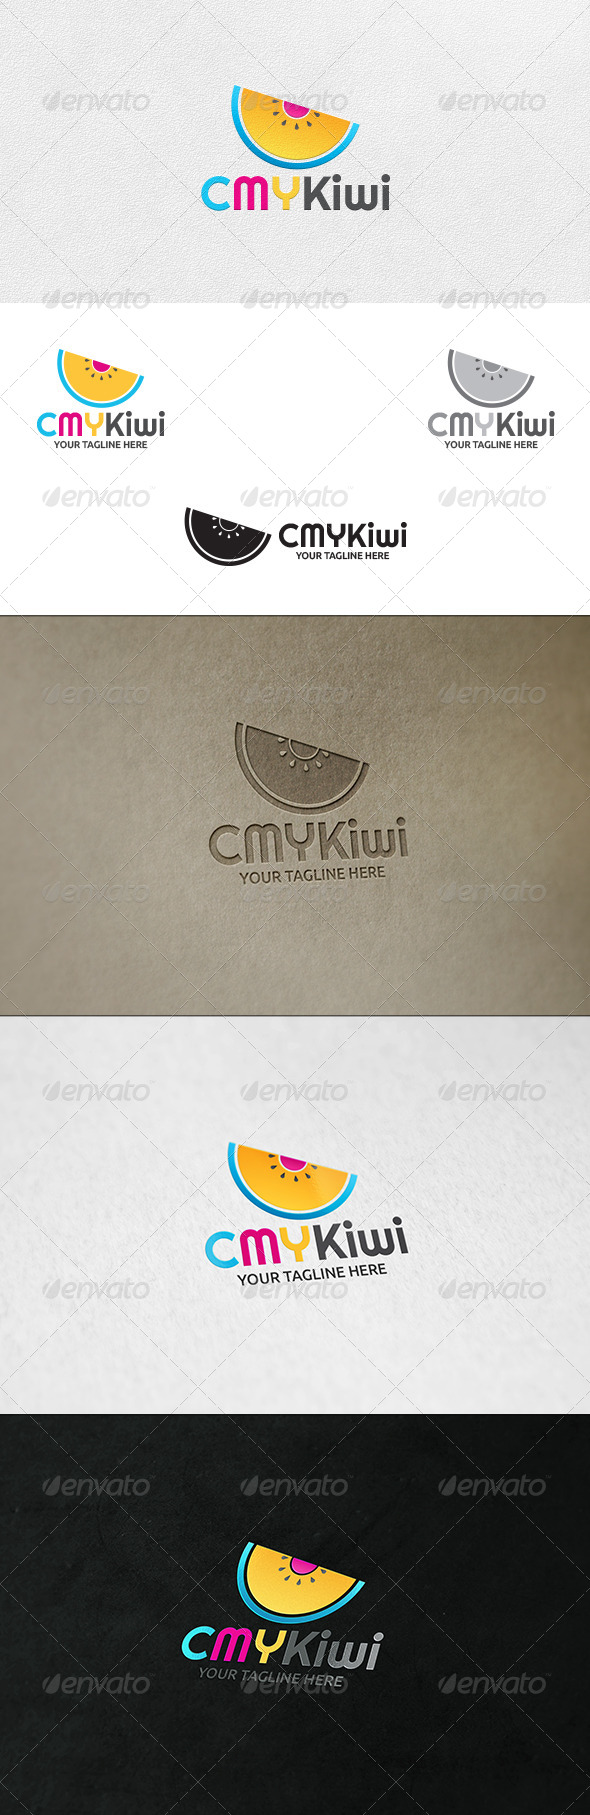 GraphicRiver CMYKiwi Logo Template 6626802